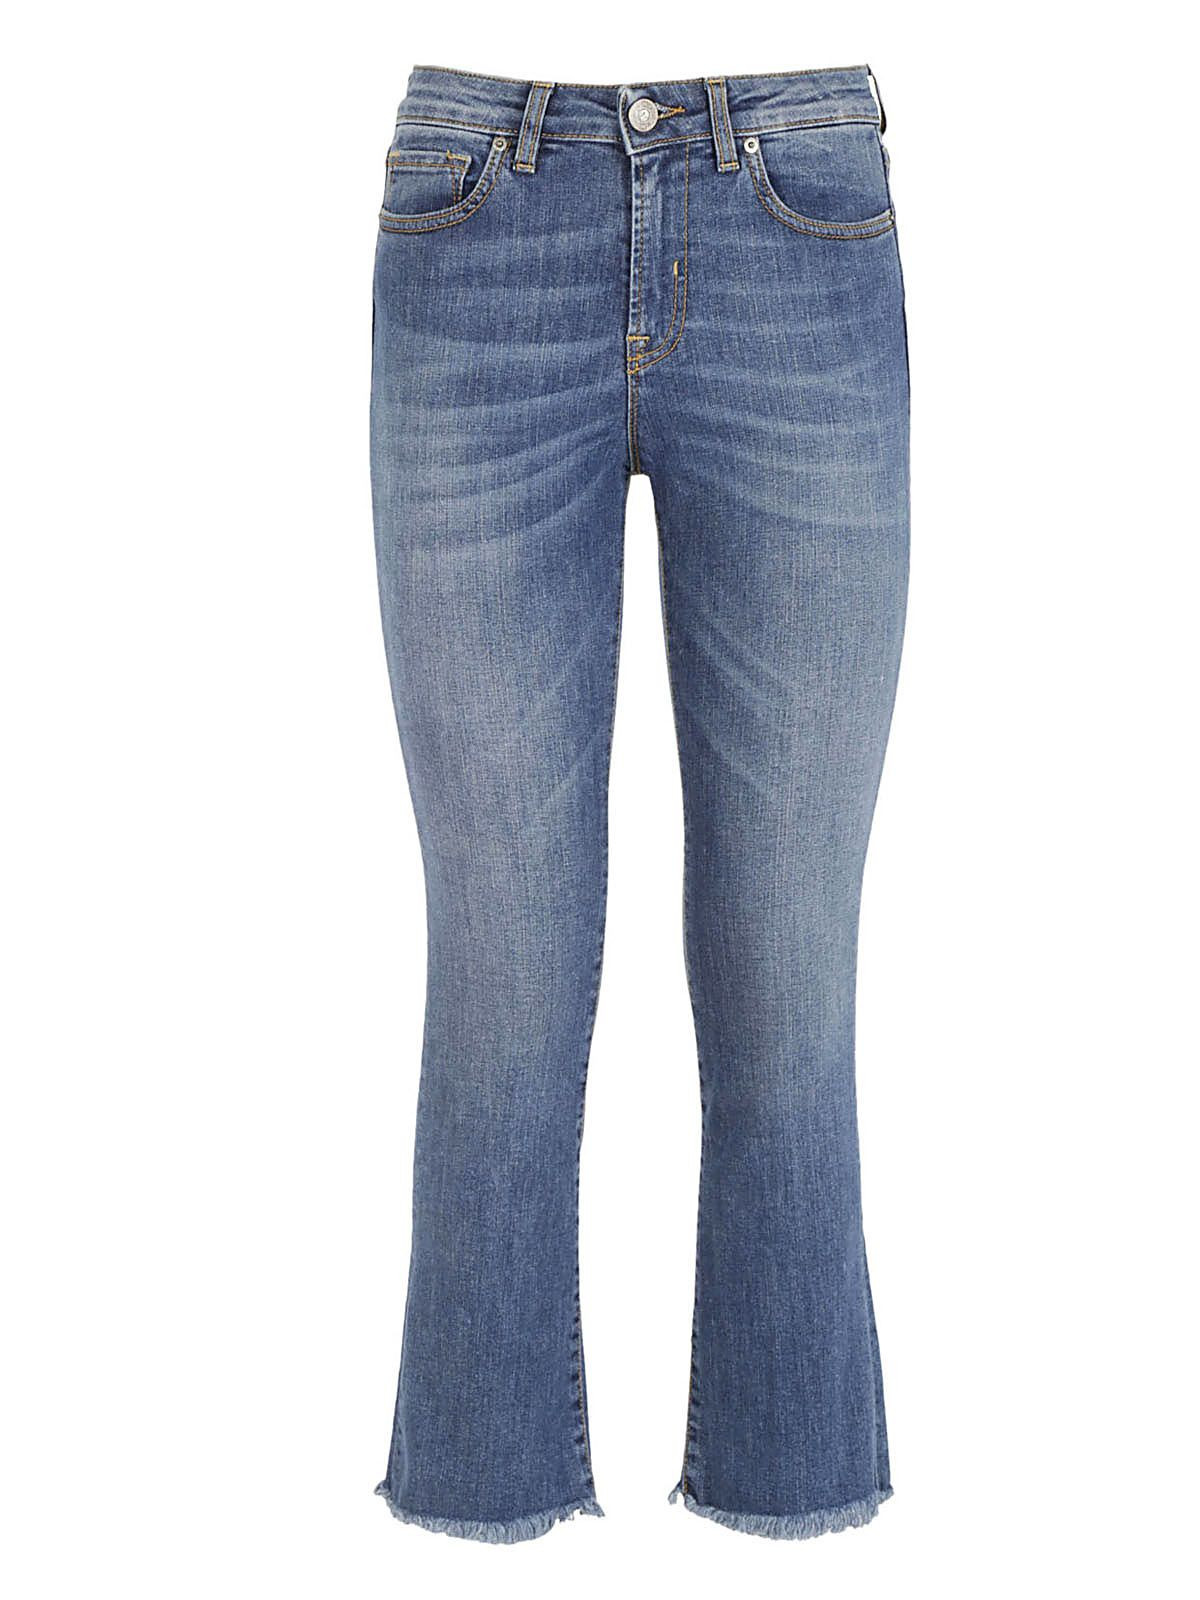 Two Women In The World Gaila Jeans